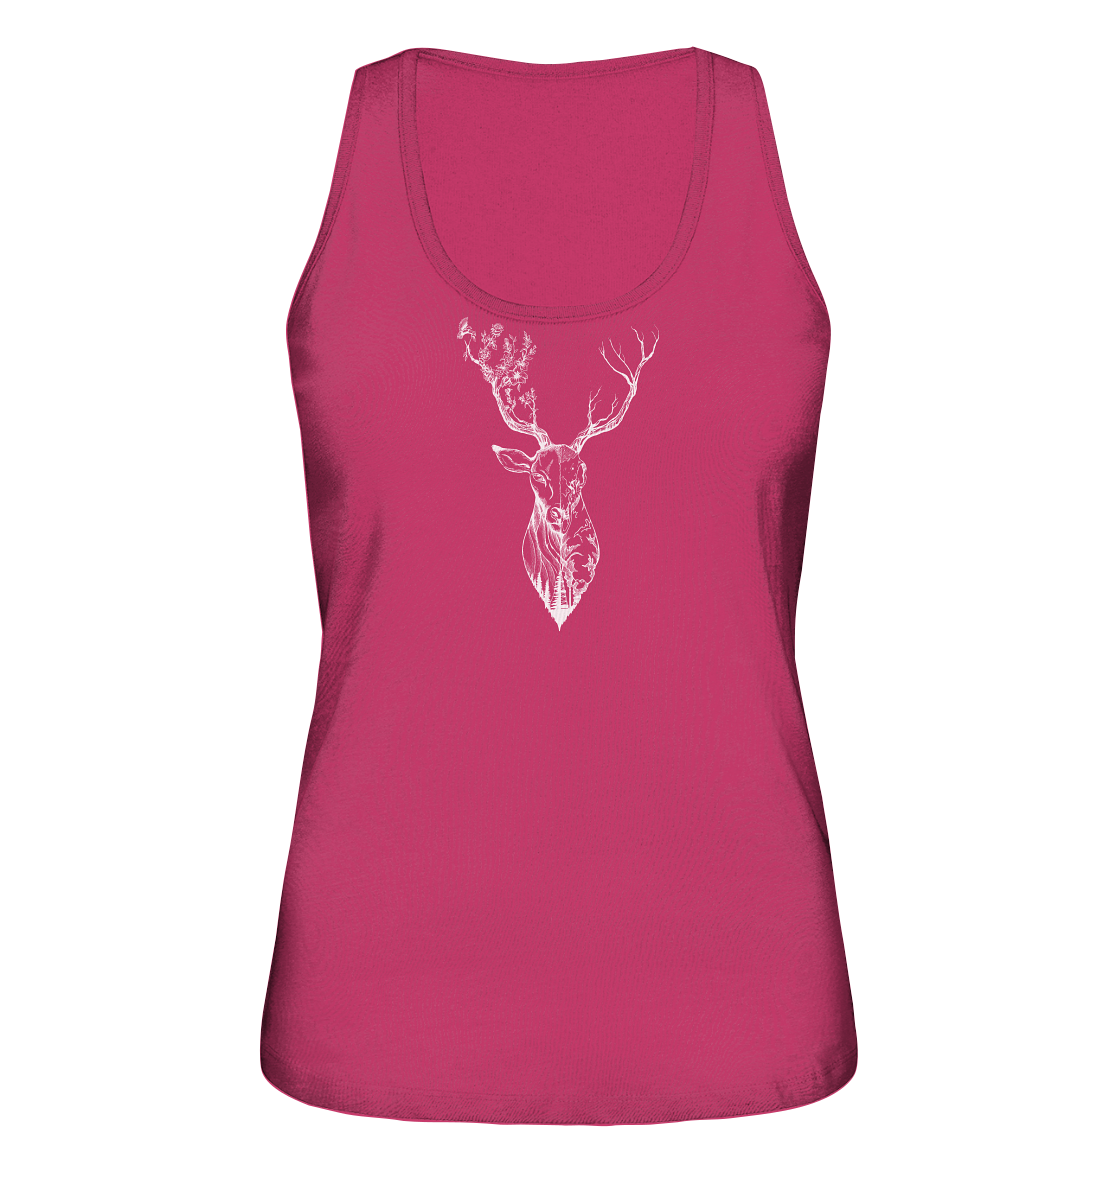 front-ladies-organic-tank-top-c63a6a-1116x-4.png